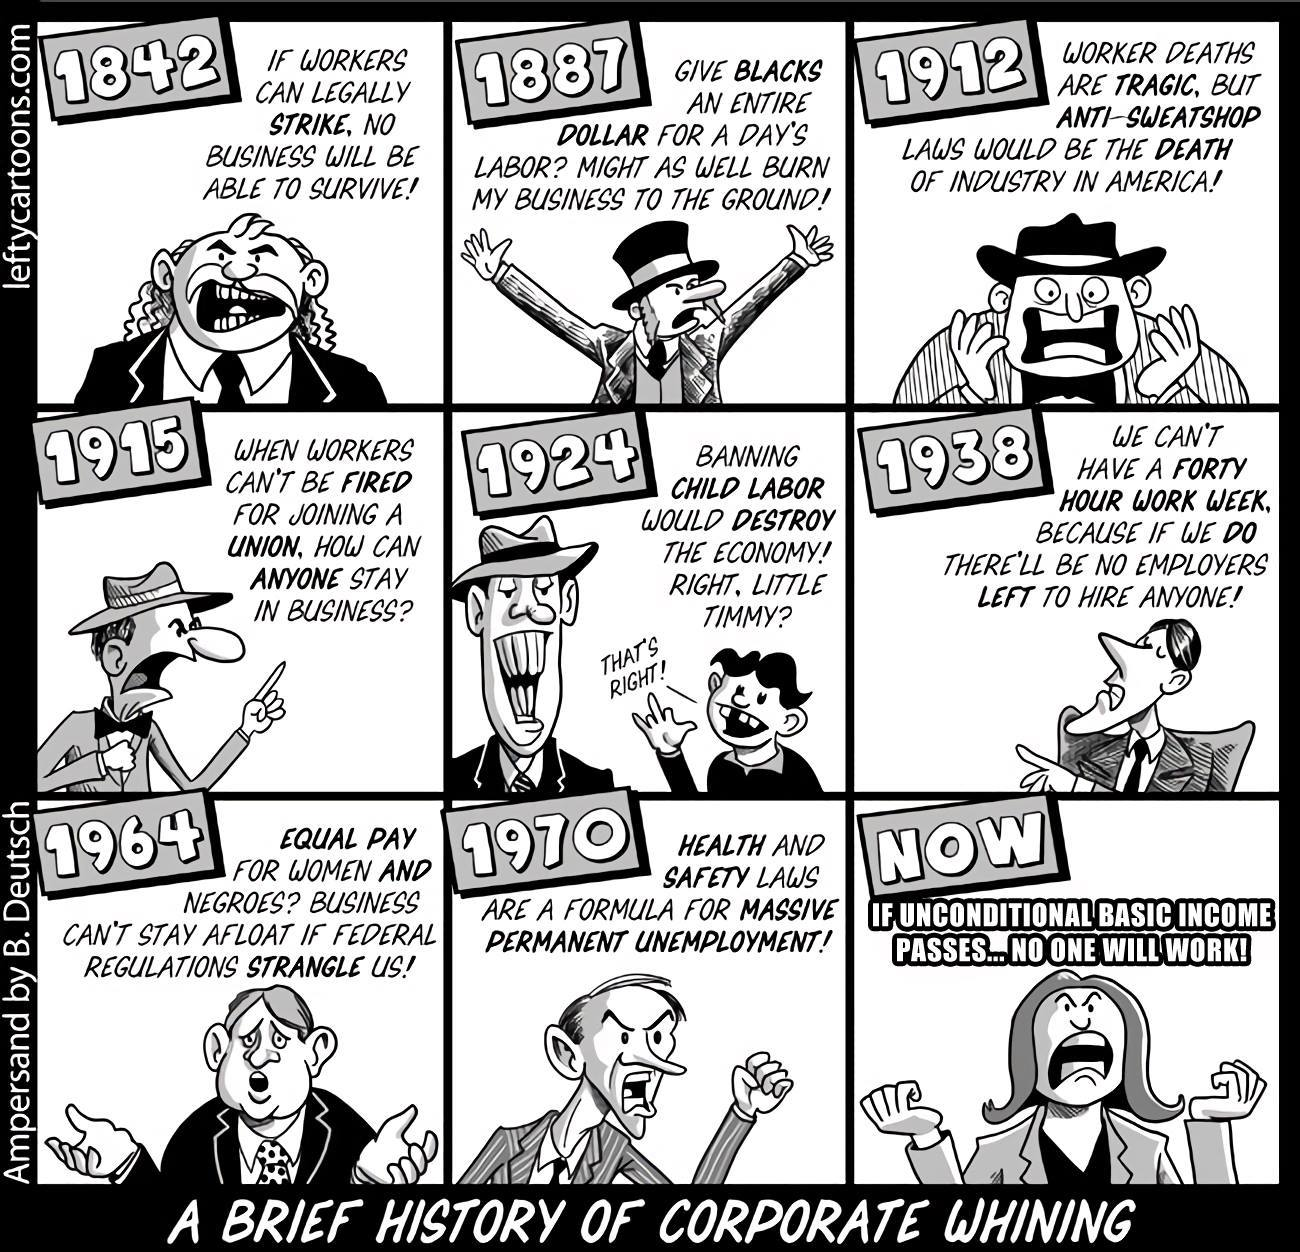 corporate whining DU